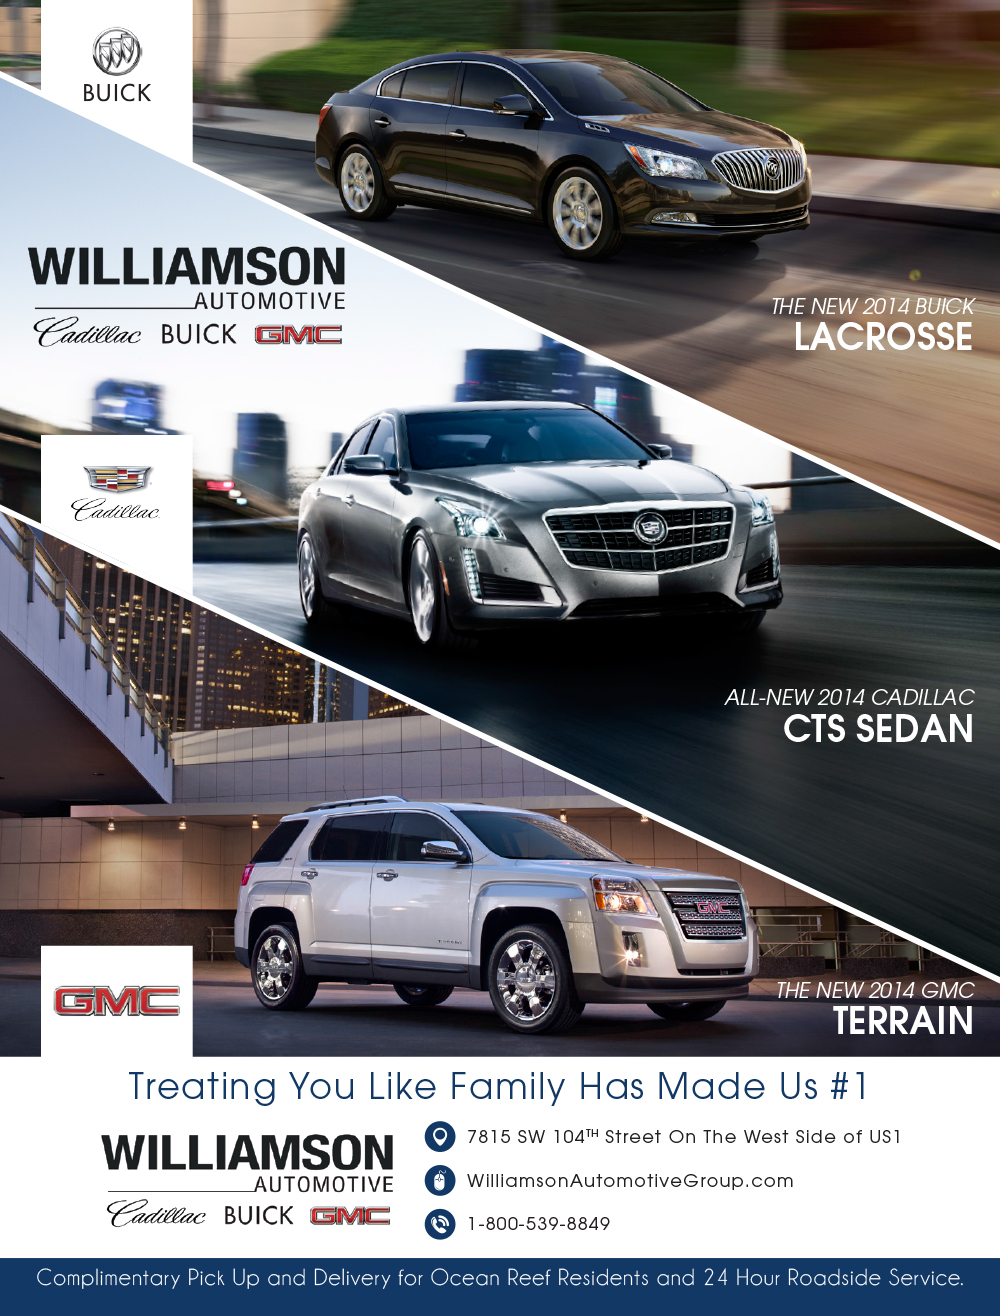 Williamson-Automotive-2014-Buick-Lacrosse-Cadillac-CTS-Sedan-GMC-Terrain-Print-Ad